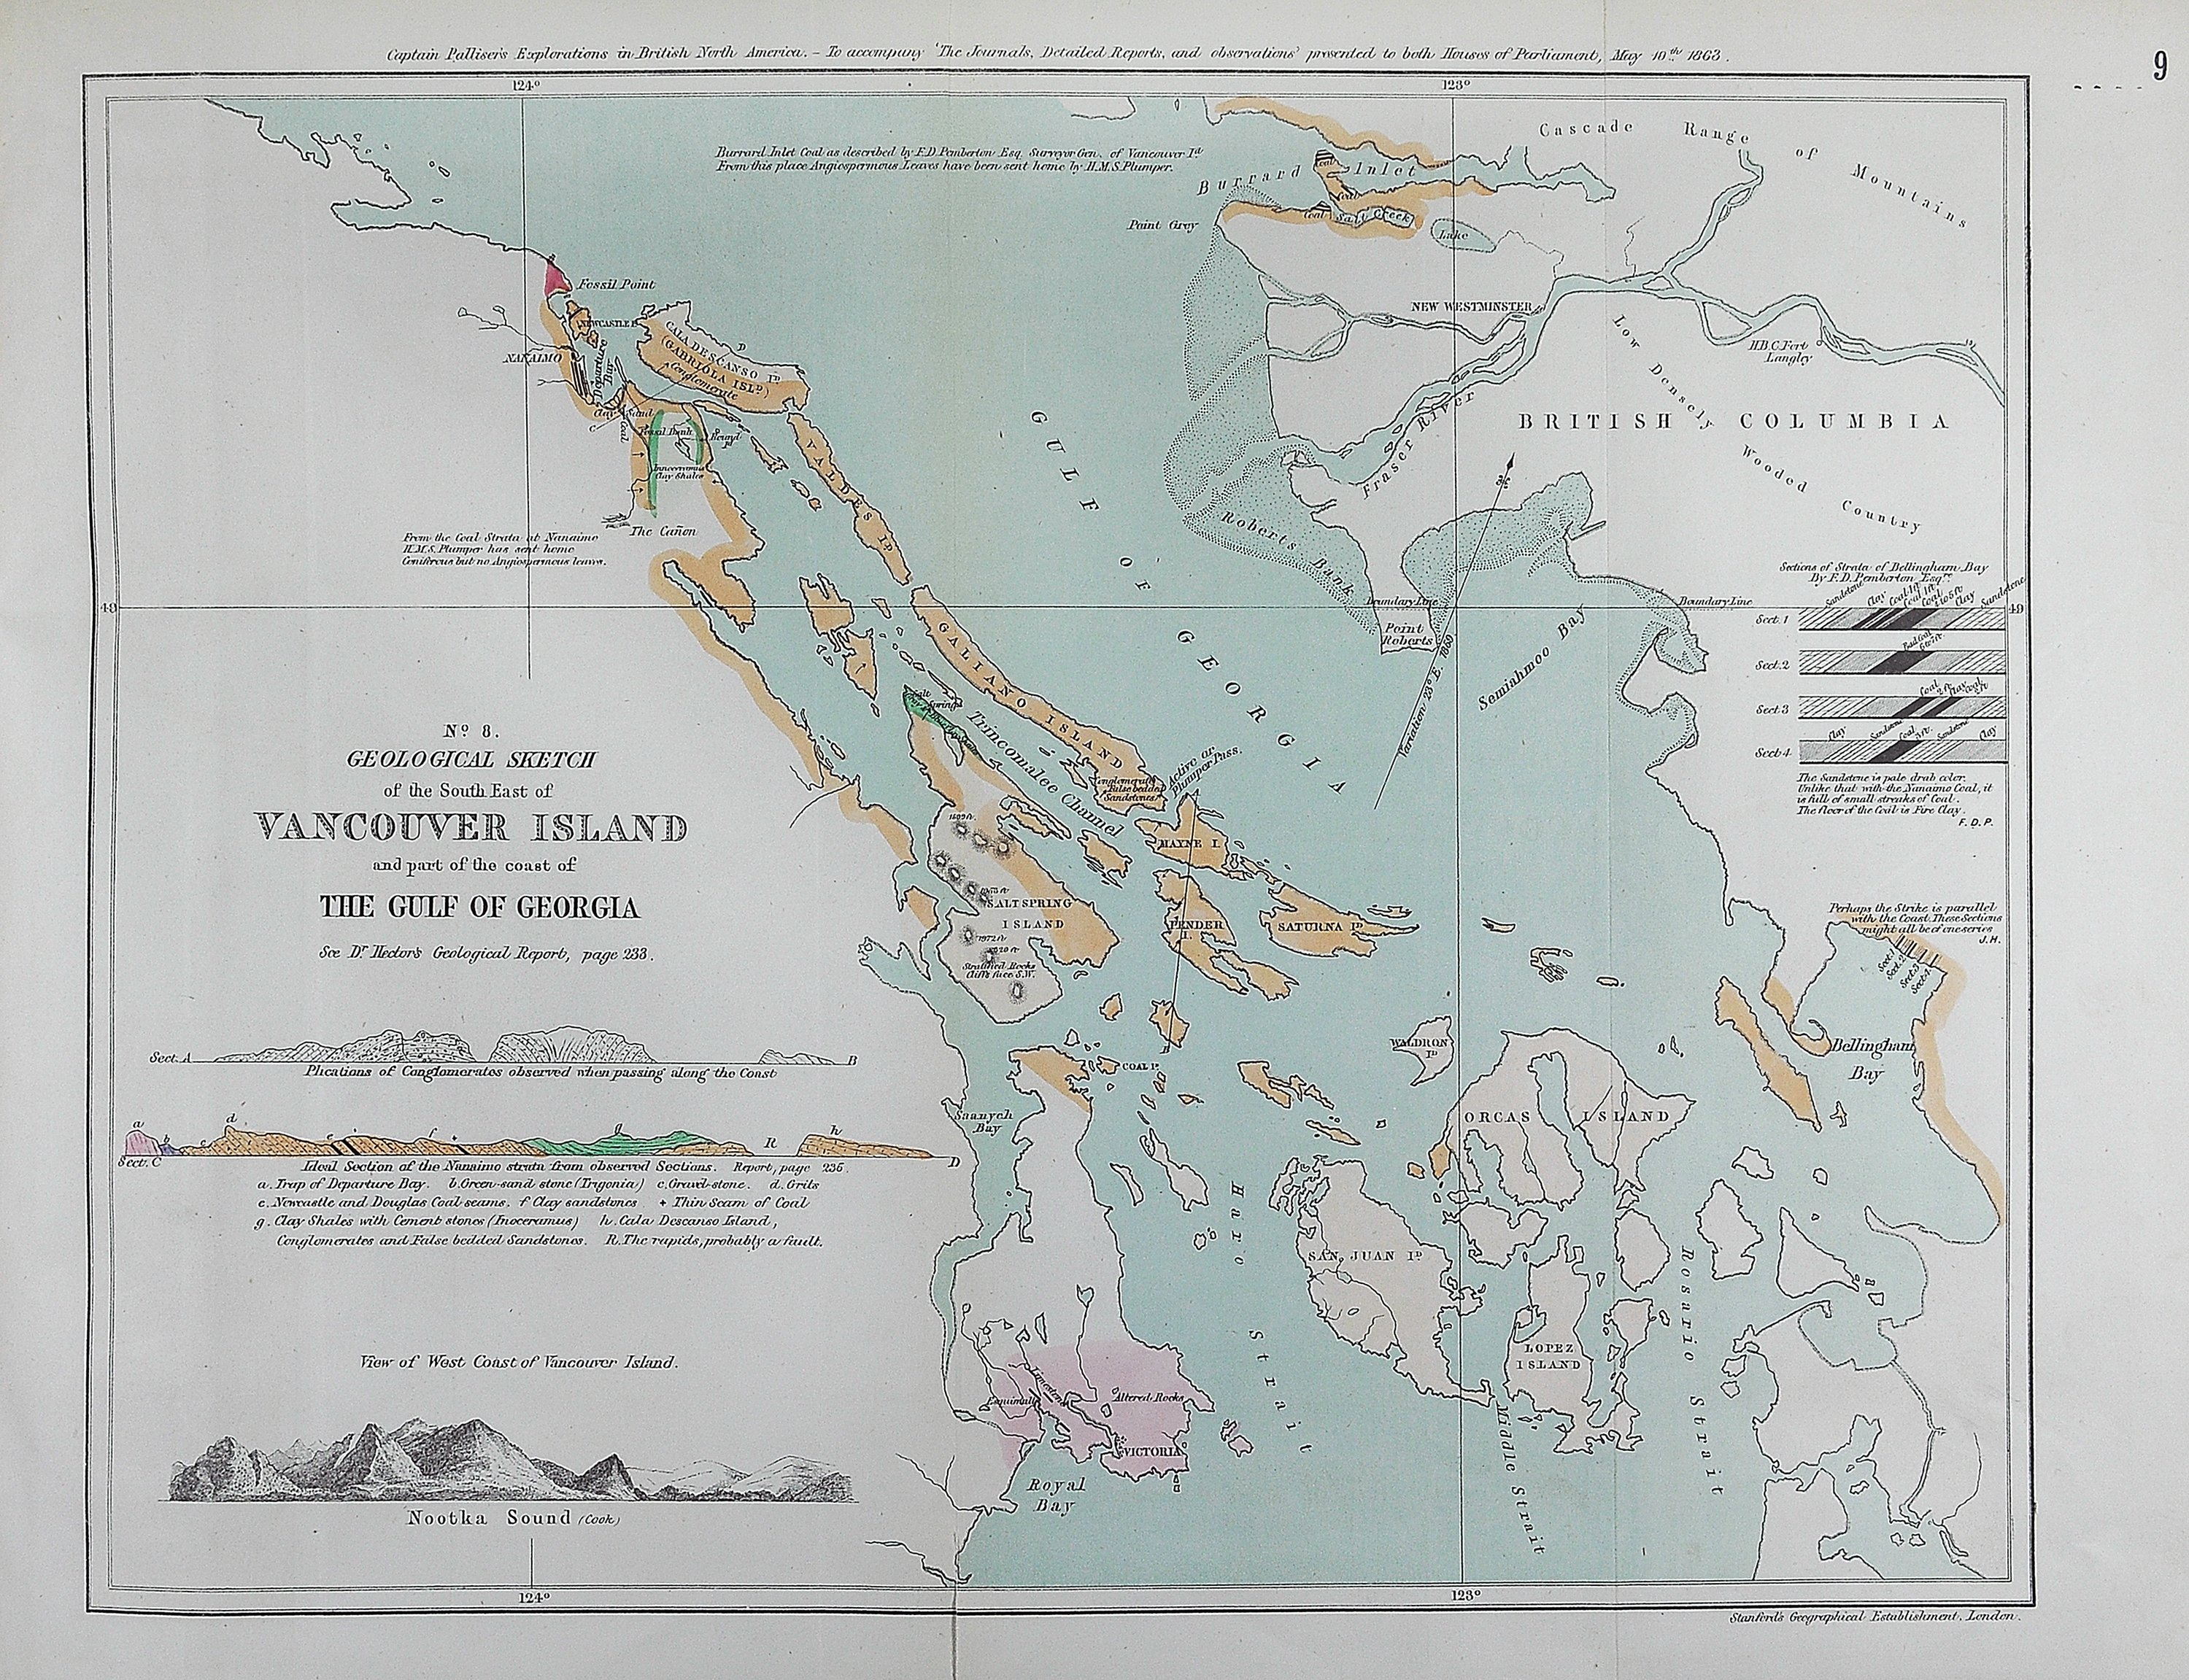 Geological sketch of the south east of Vancouver Island and part of the coast of the Gulf of Georgia.